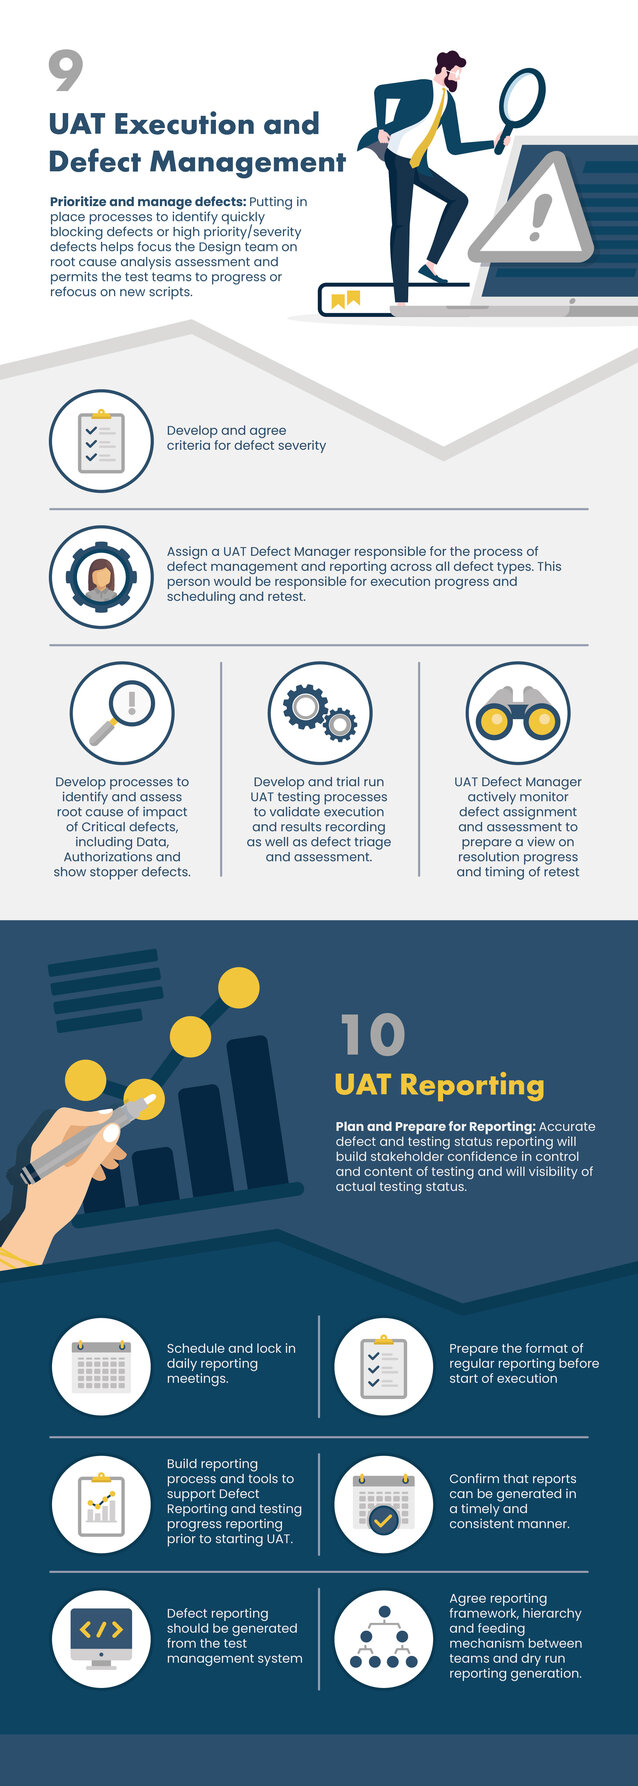 UAT tips and tricks part 4